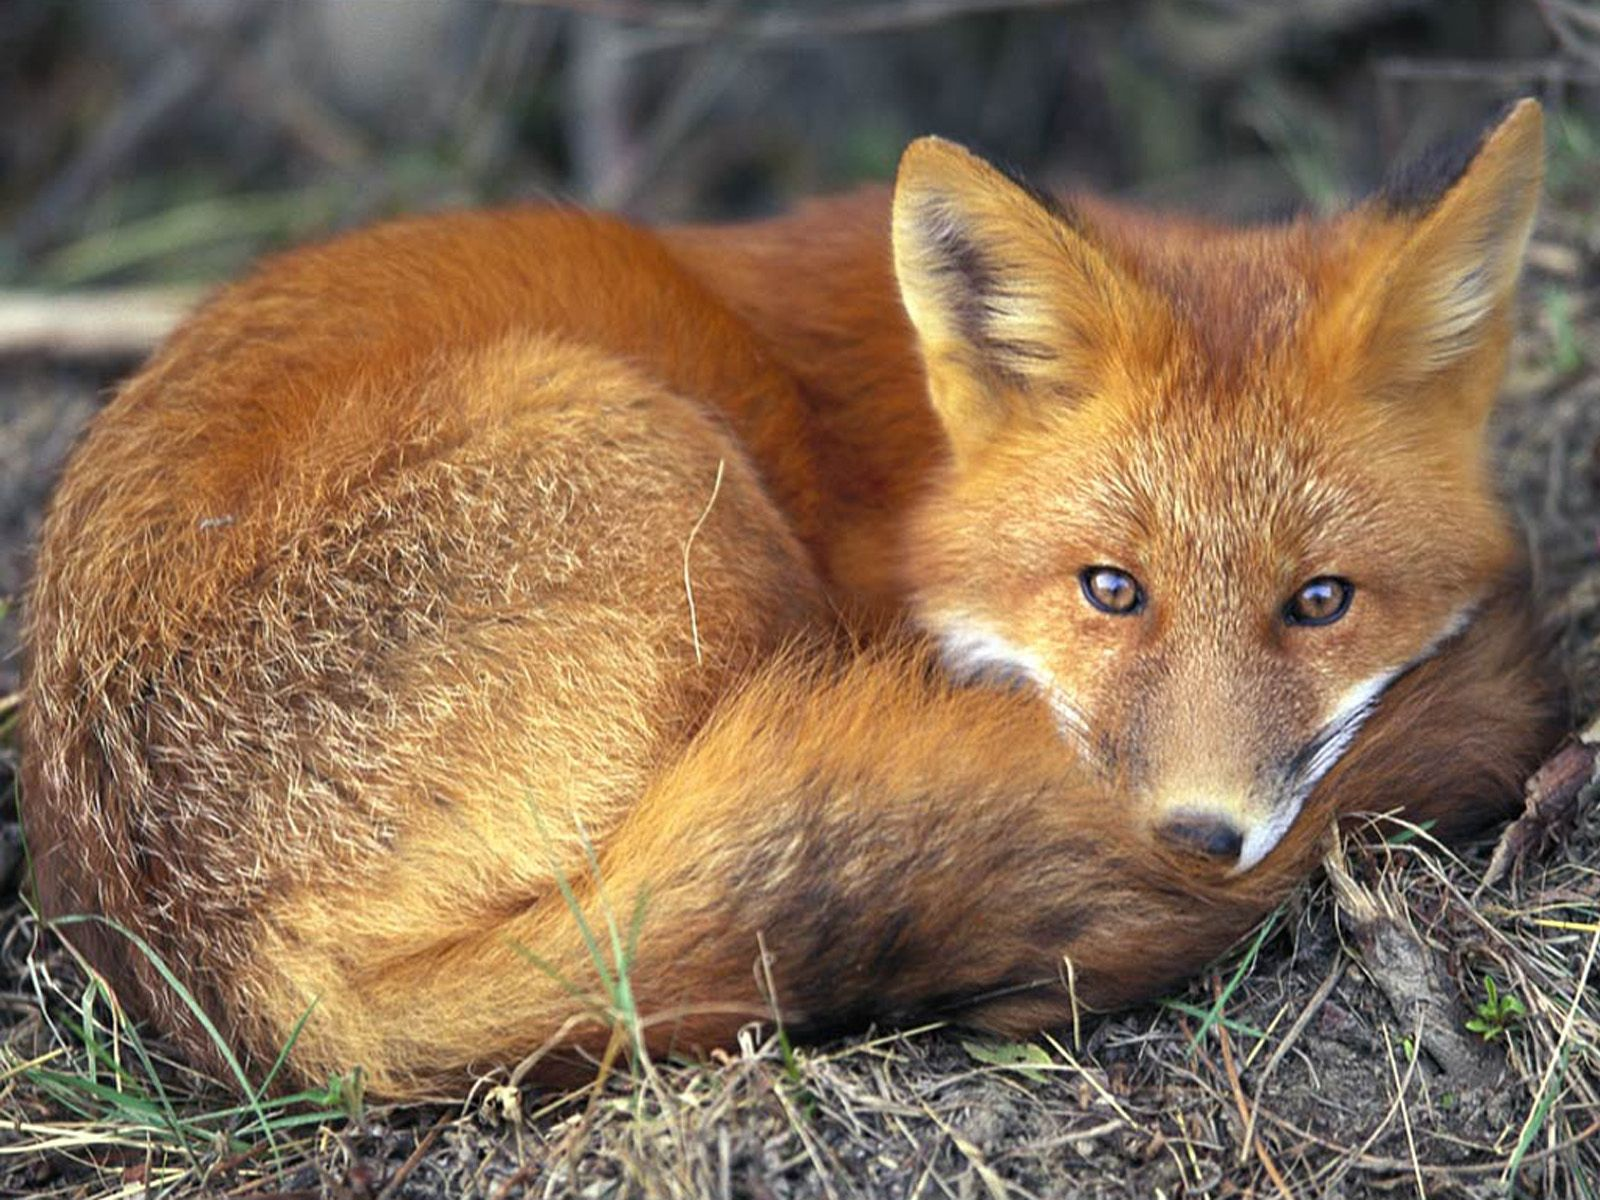 108445 download wallpaper Animals, Fox, To Lie Down, Lie, Relaxation, Rest, Bask screensavers and pictures for free